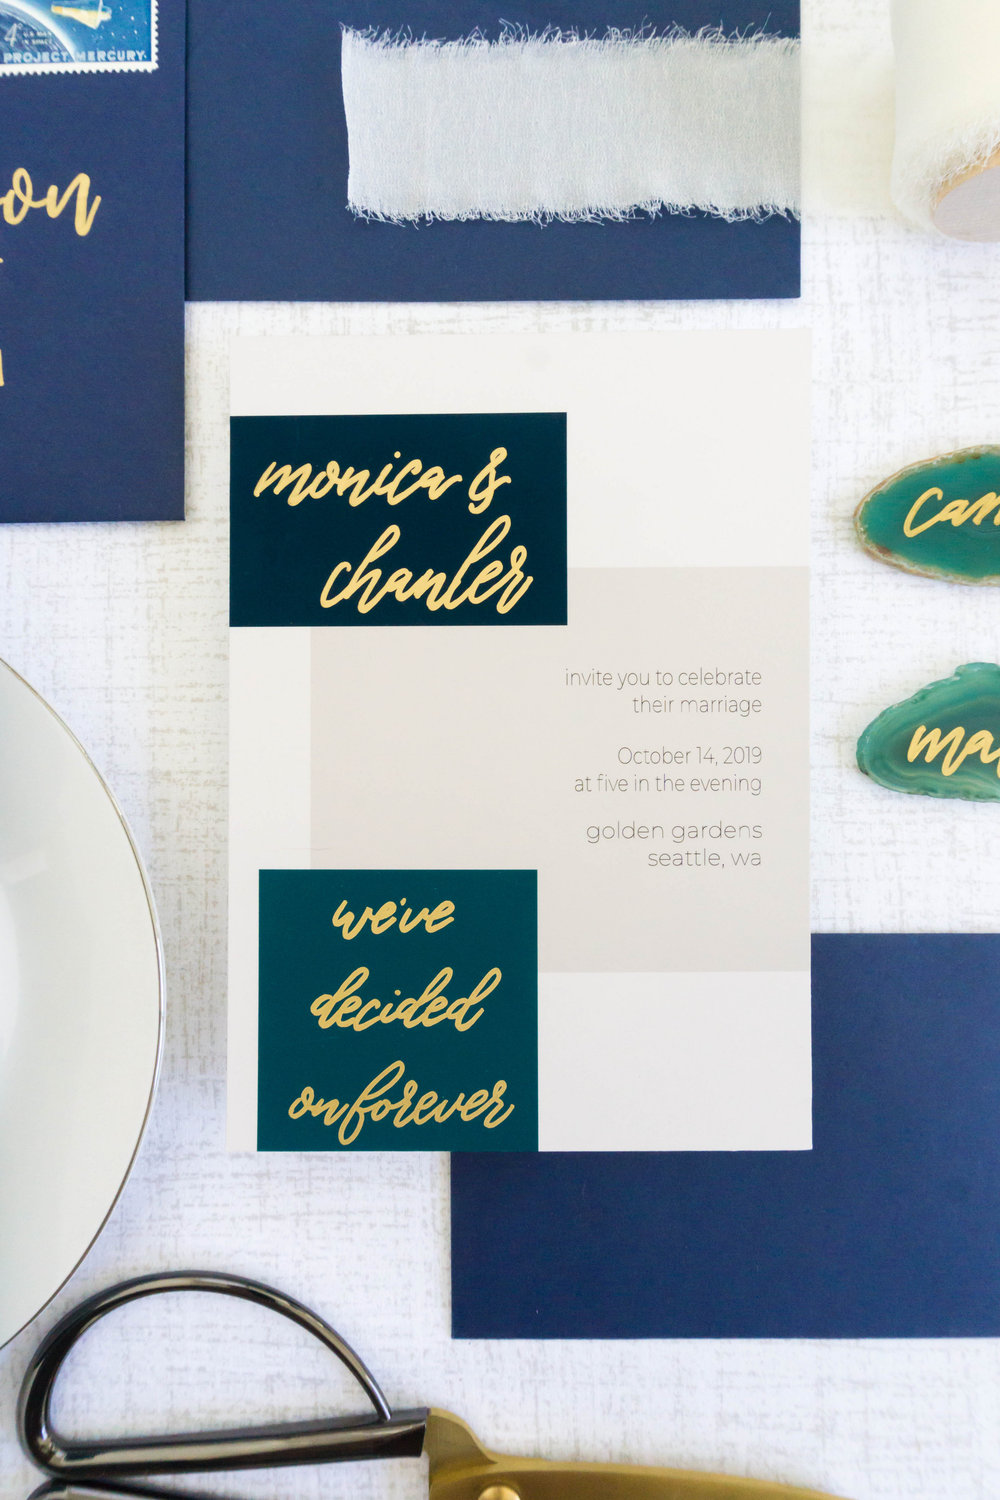 love-fern-design-studio-custom-wedding-invitations-for-the-modern-couple-modern-calligraphy-in-seattle-washington-custom-wedding-stationery-navy-gold-teal-modern-color-block-invitation